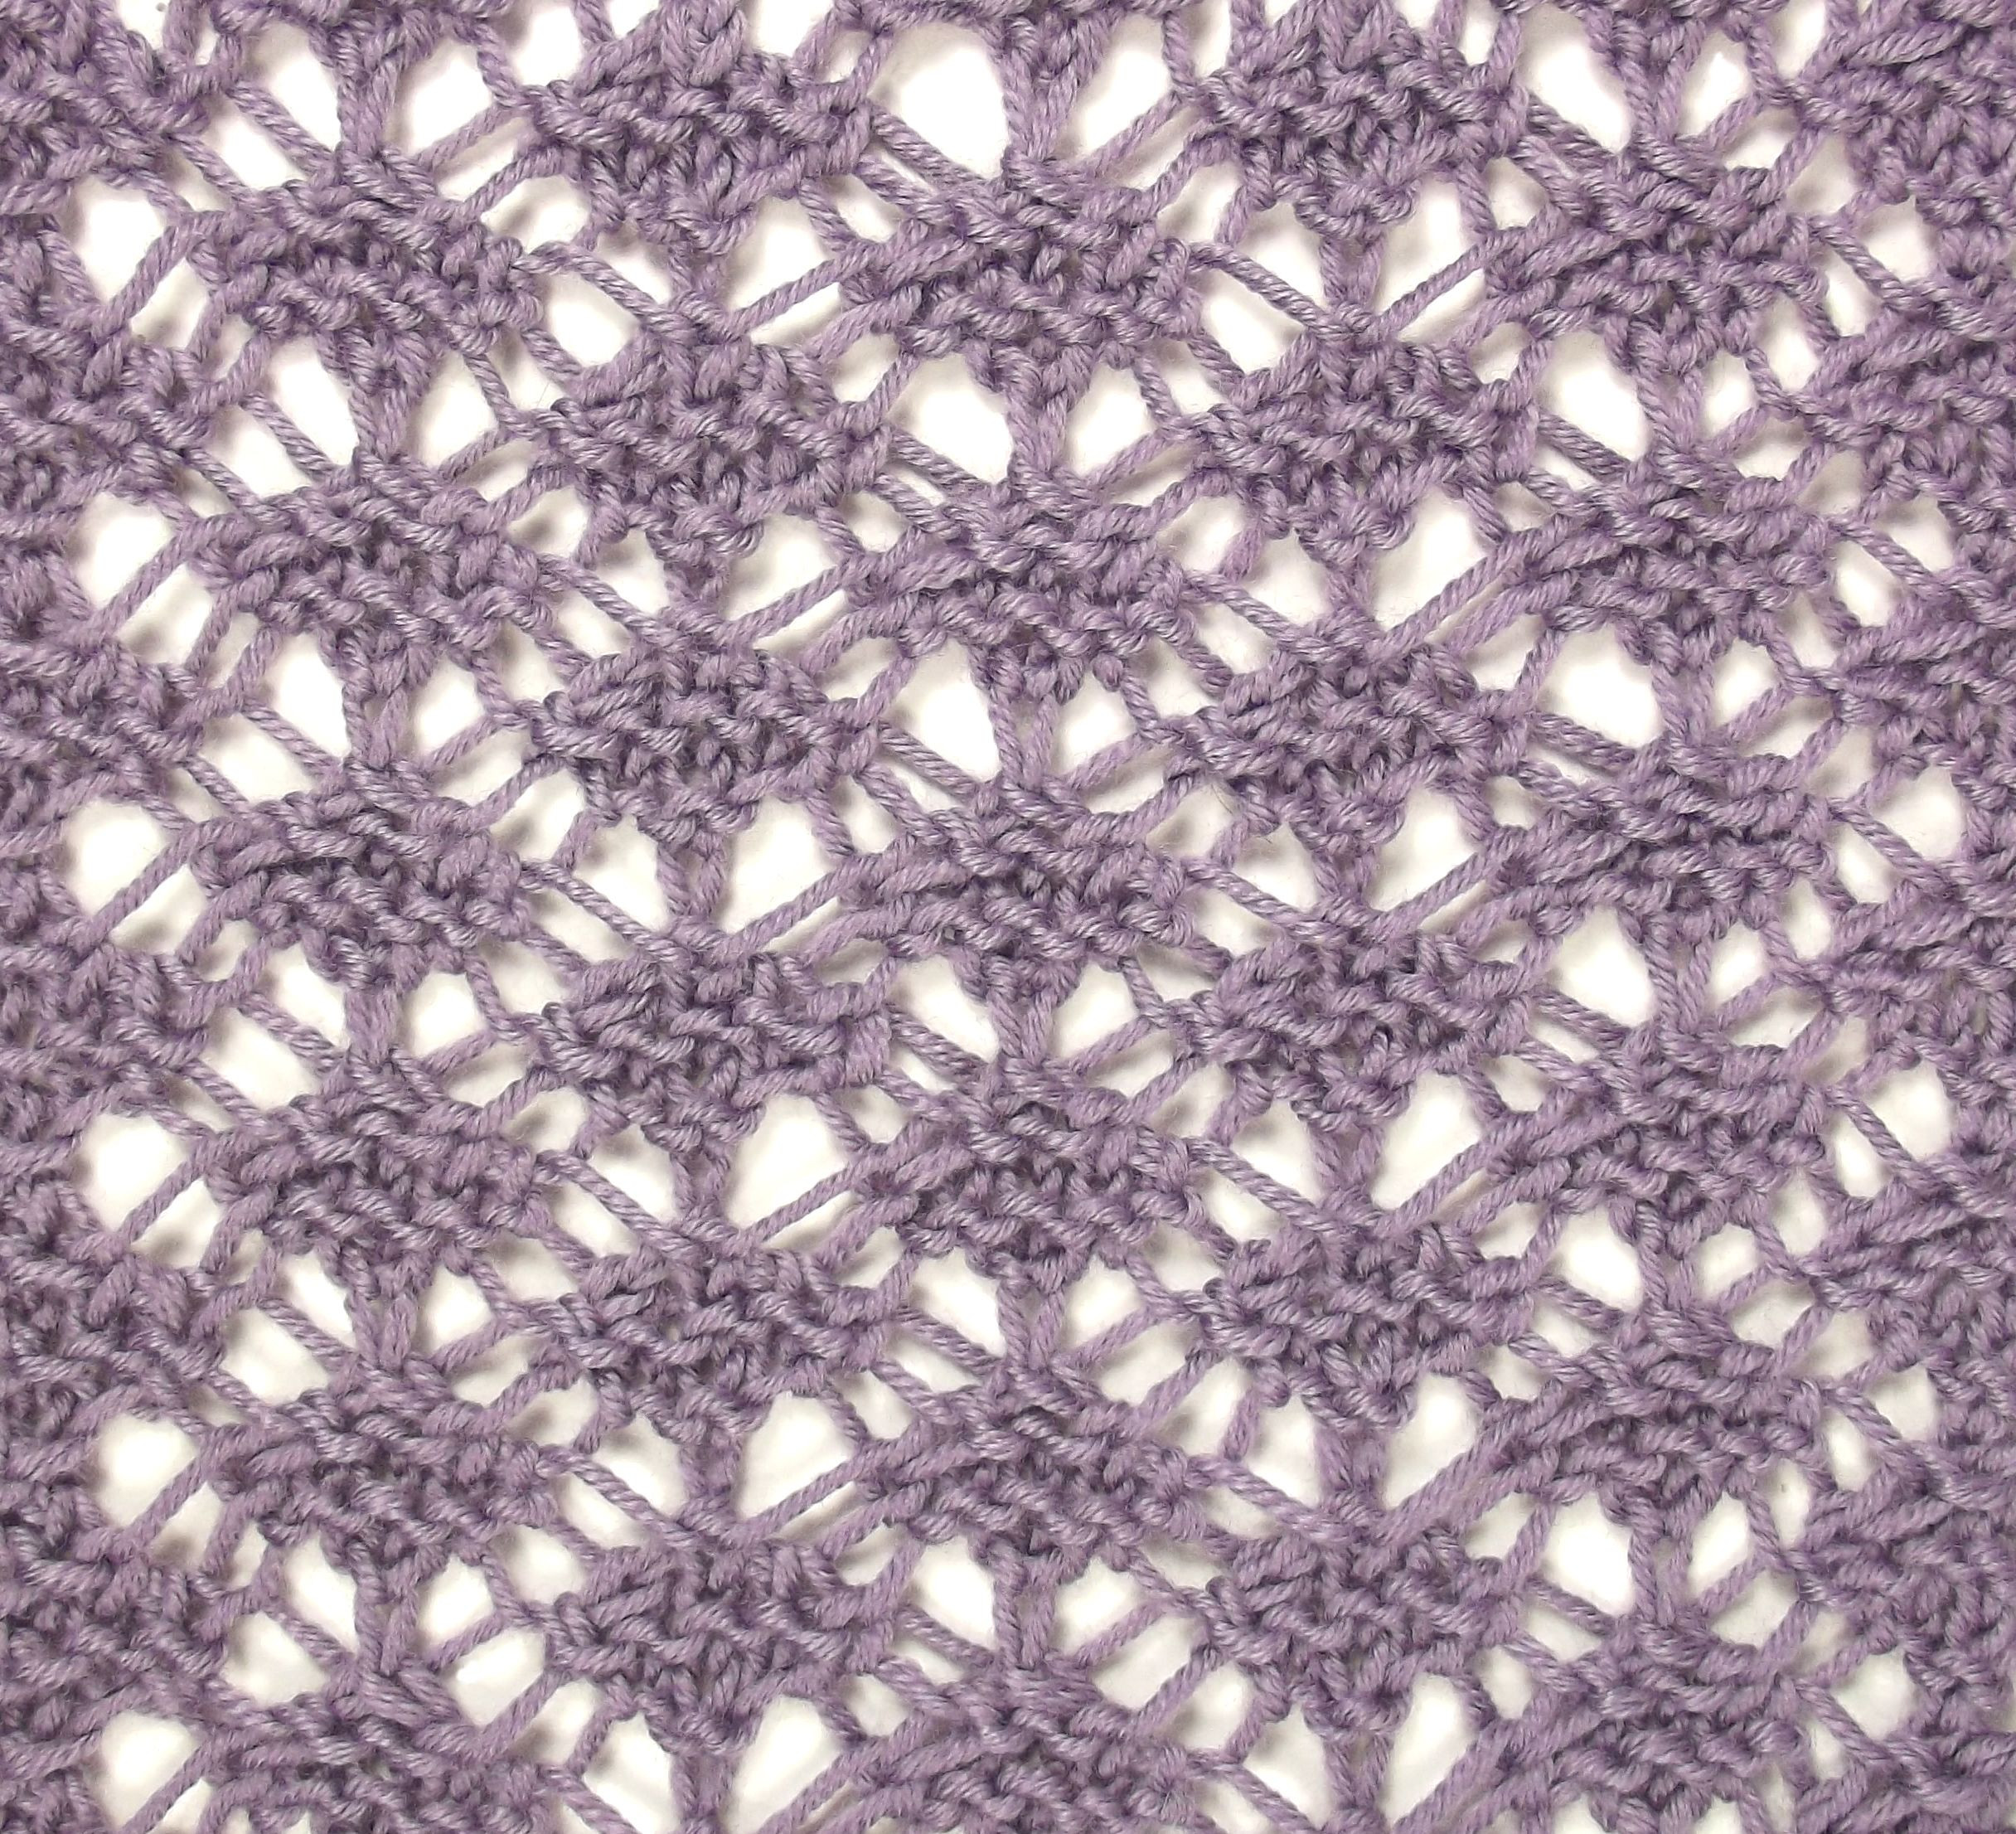 Best Of Lace Crochet Stitches Lacy Crochet Stitches Of New 49 Photos Lacy Crochet Stitches